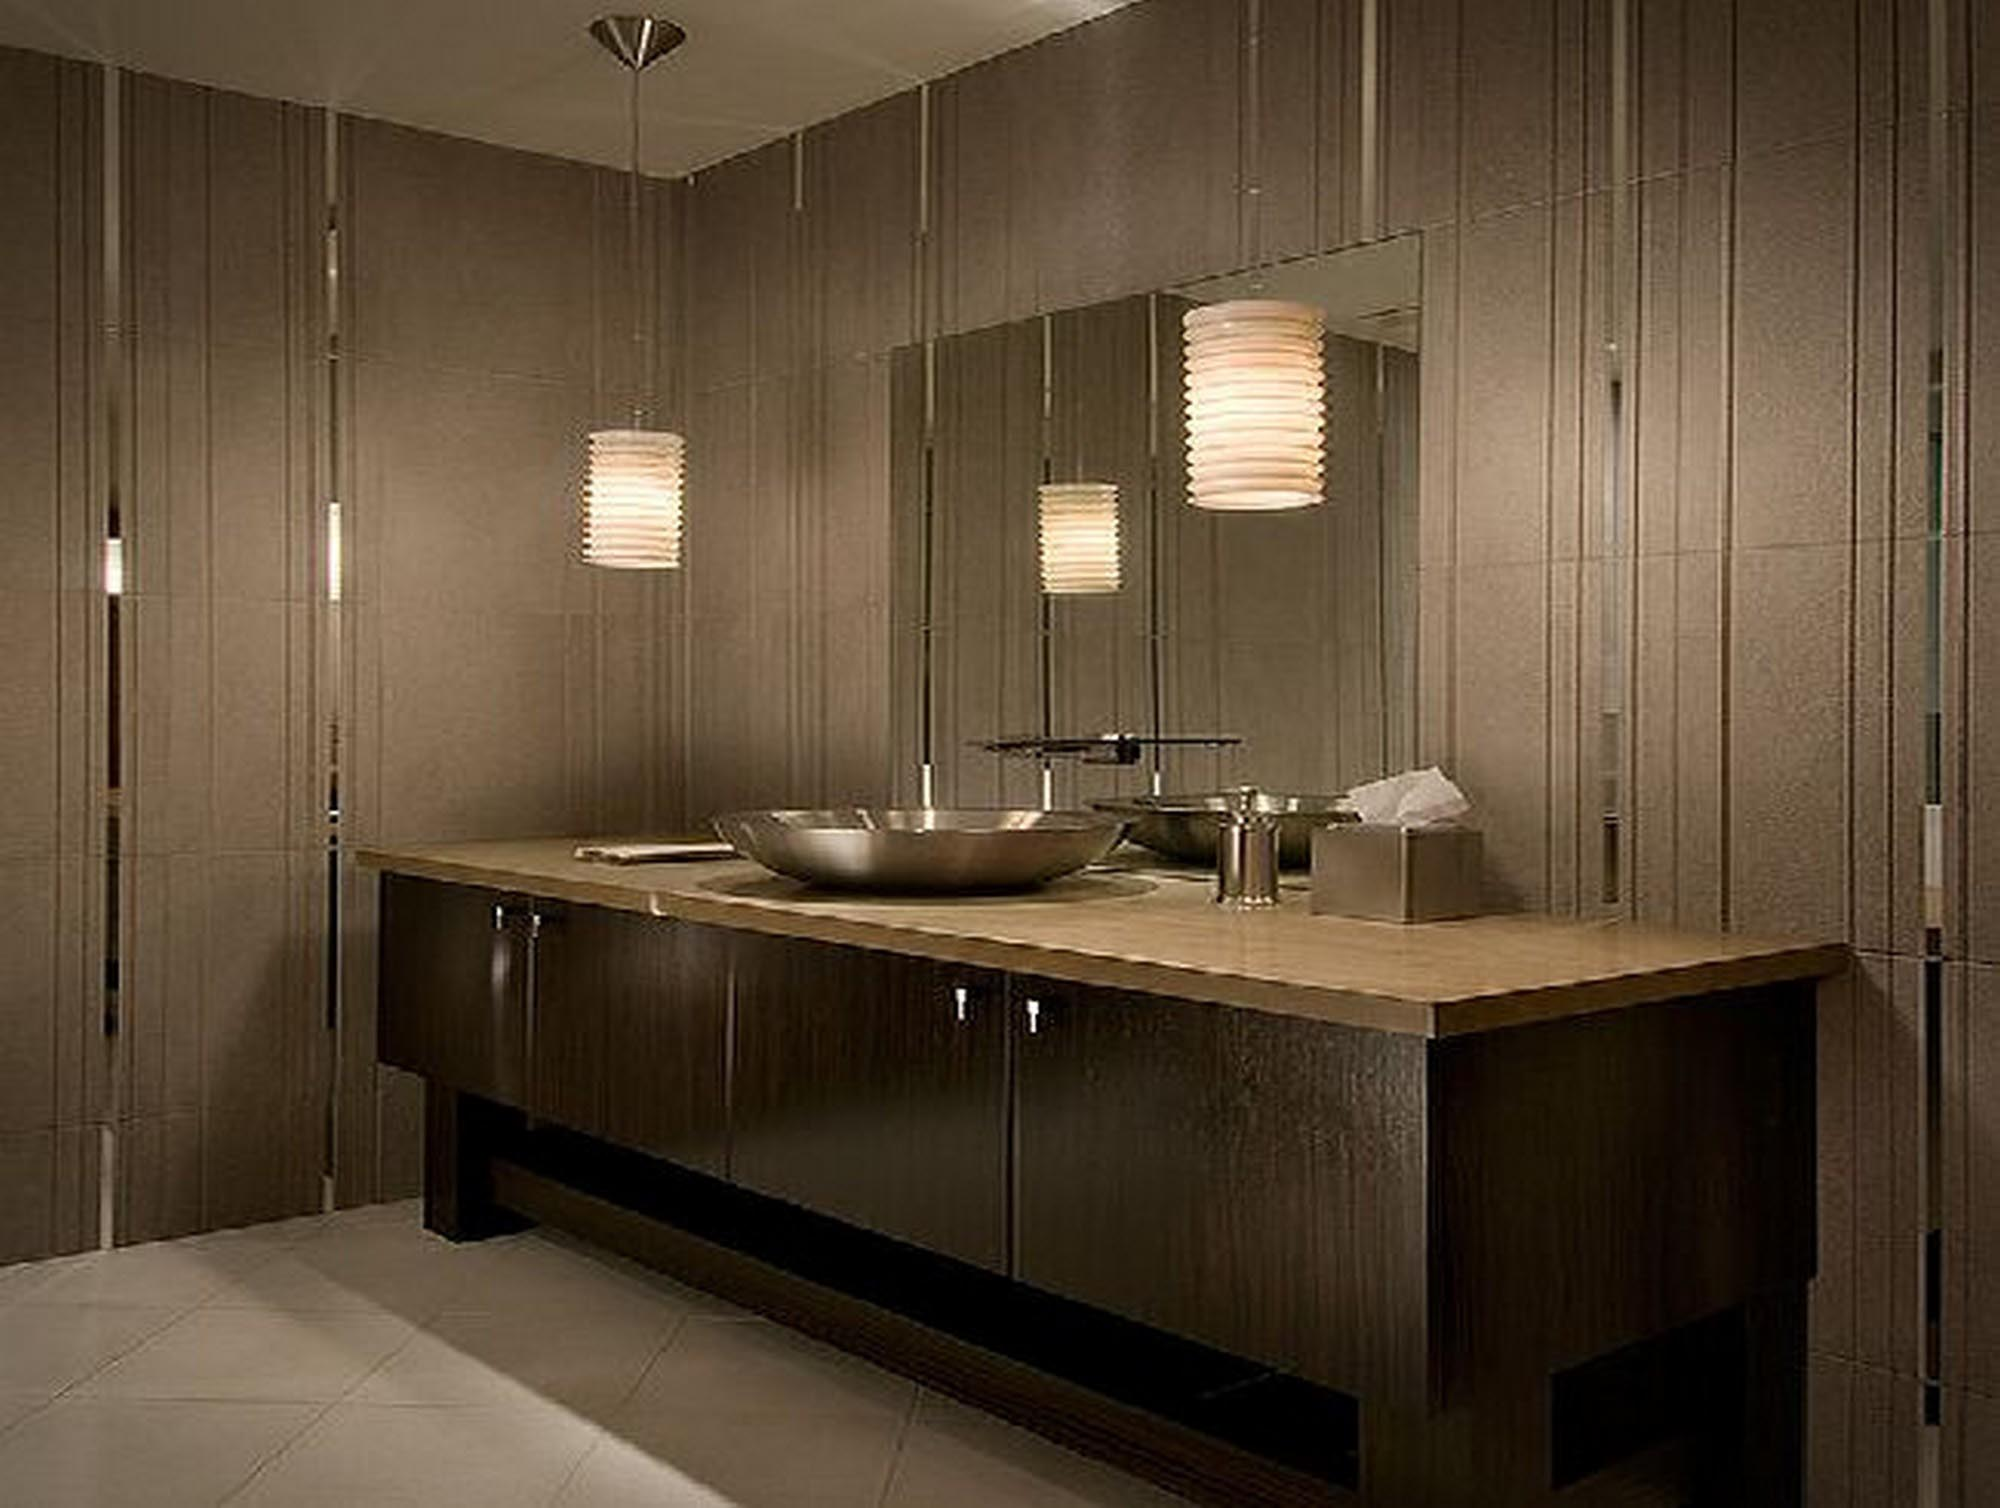 Elegant Bathroom Light Fixtures Ideas  DesignWallscom